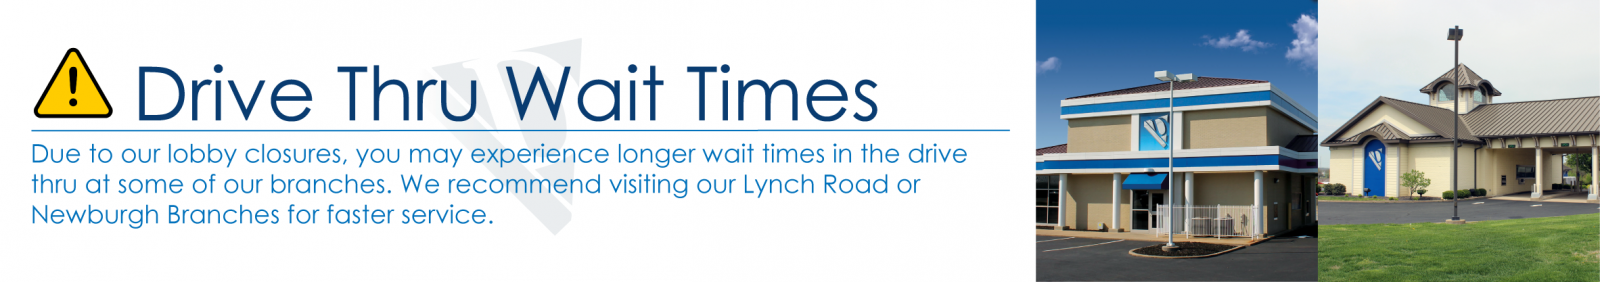 Due to our lobby closures, you may experience longer wait times in the drive thru at some of our branches. We recommend visiting our Lynch Road or Newburgh Branches for faster service.